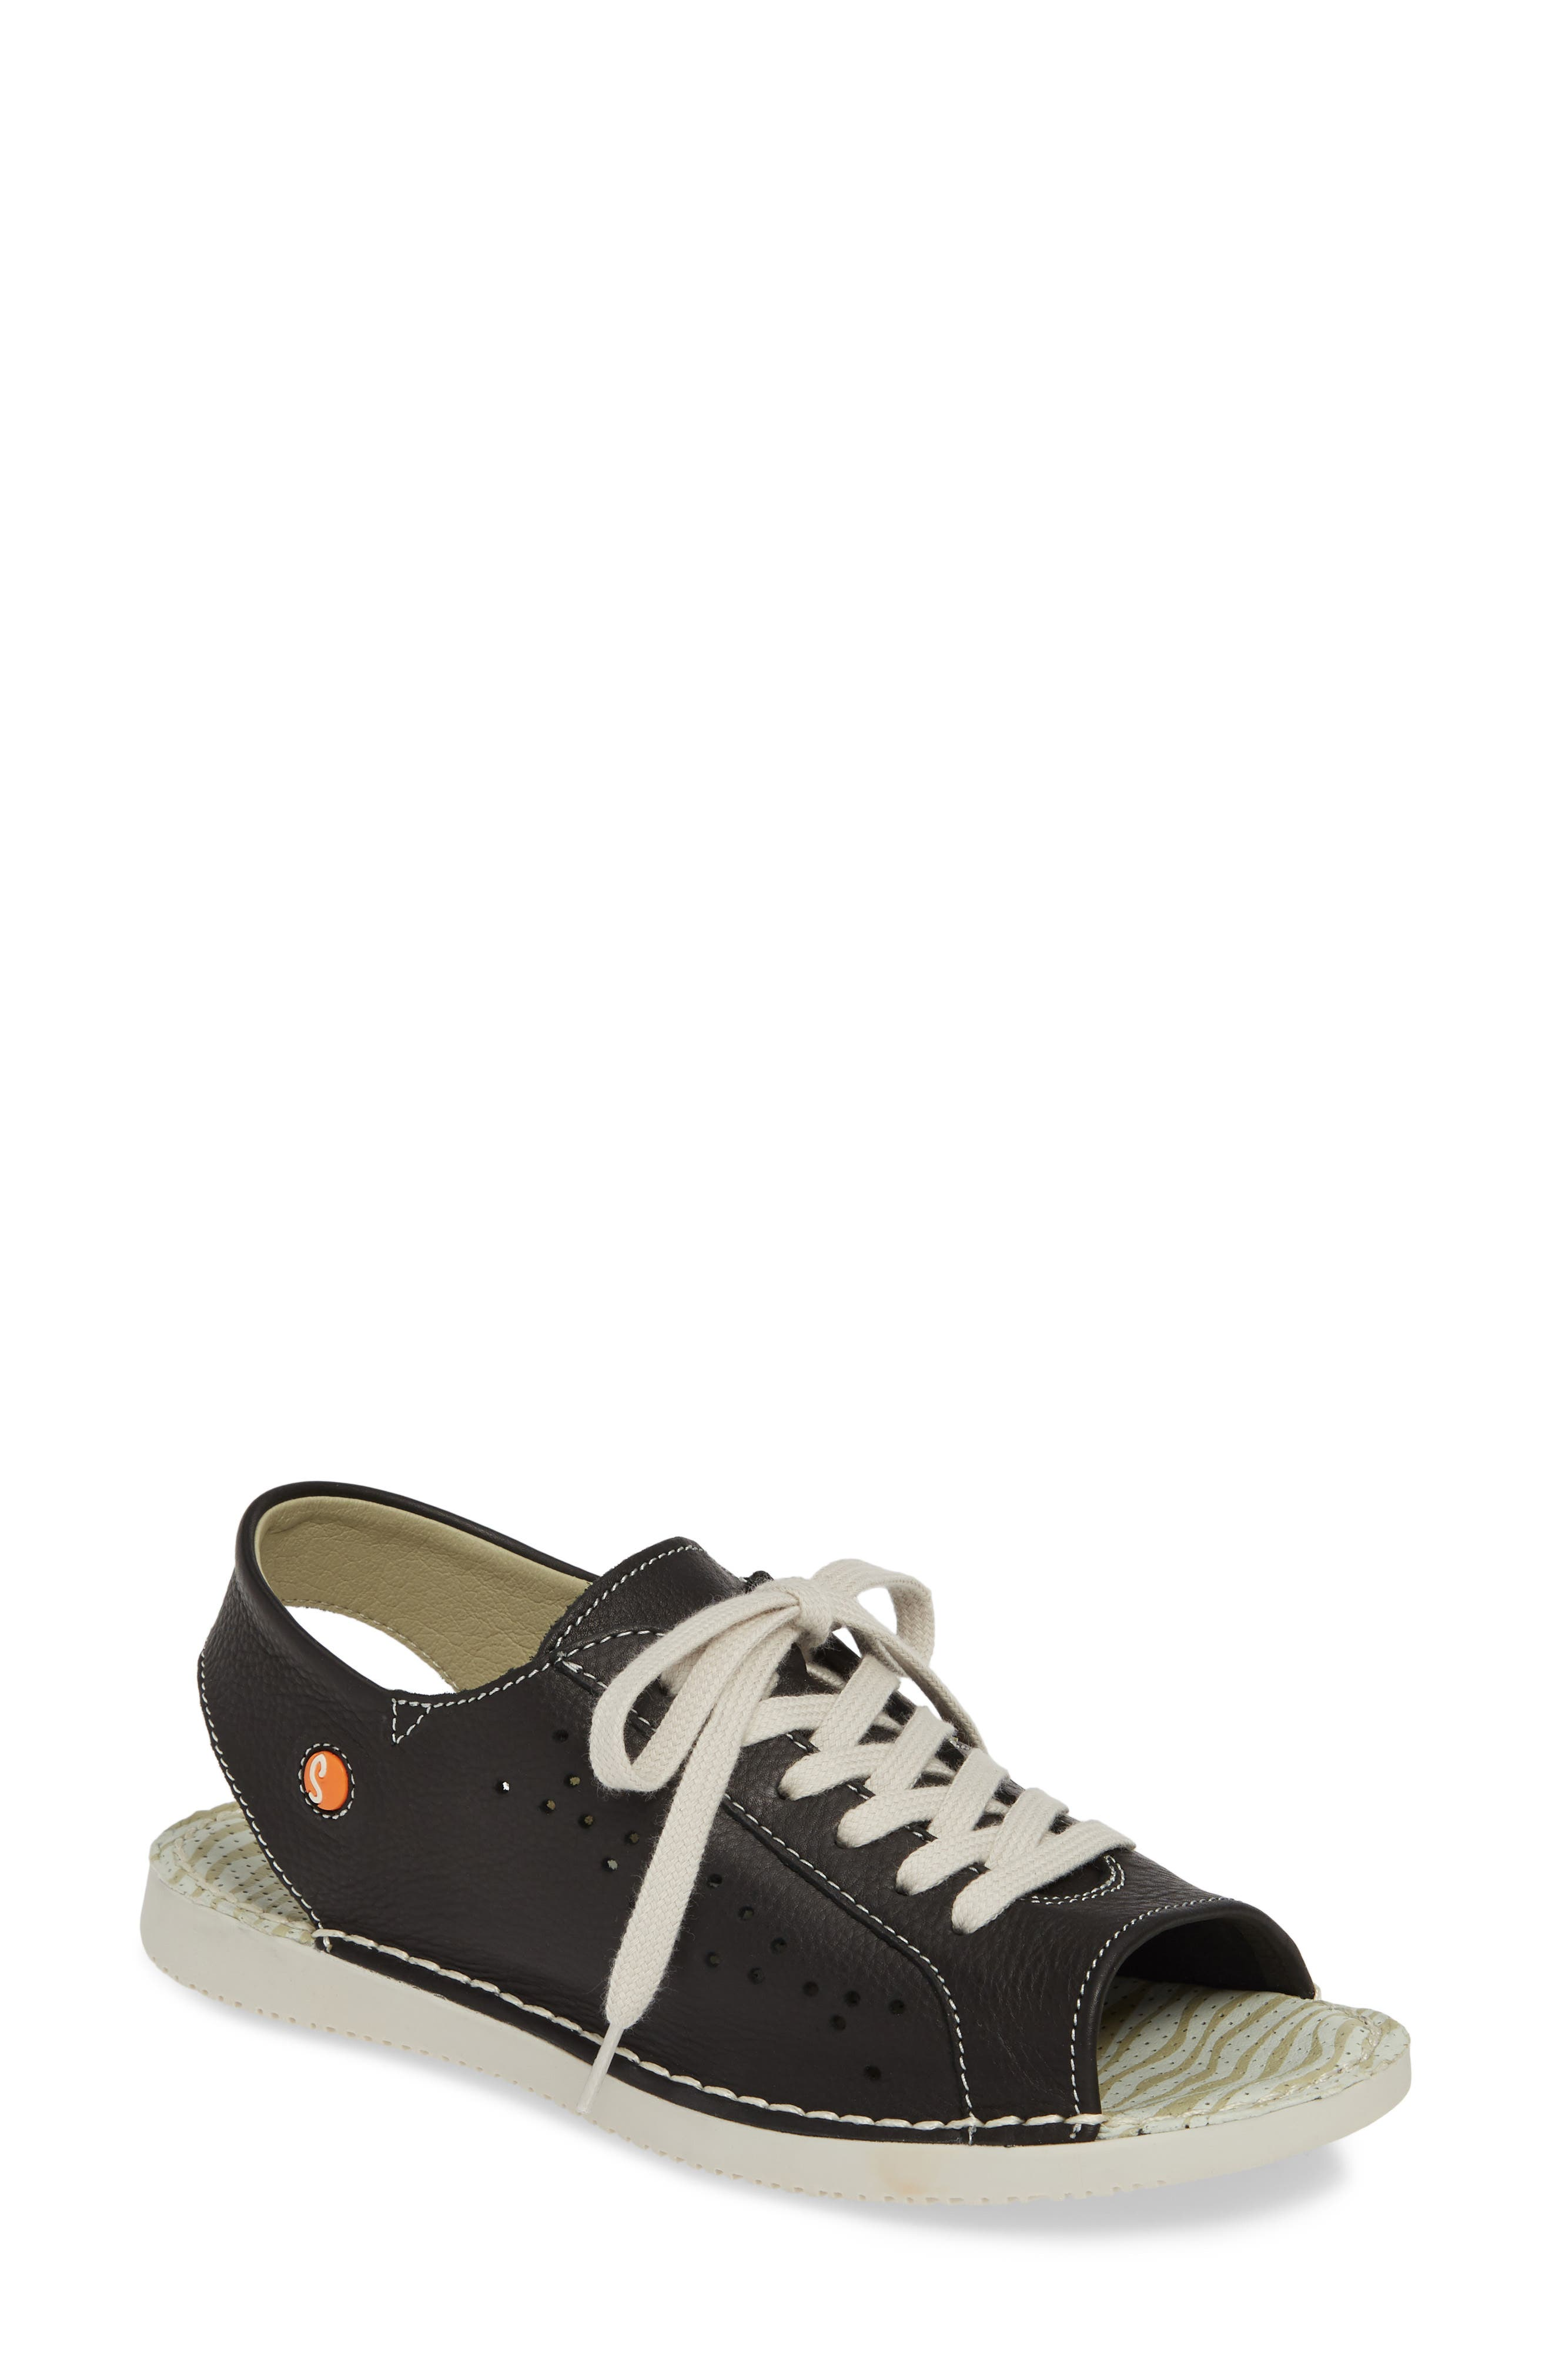 SOFTINOS BY FLY LONDON, Thi Slingback Sneaker Sandal, Main thumbnail 1, color, BLACK LEATHER